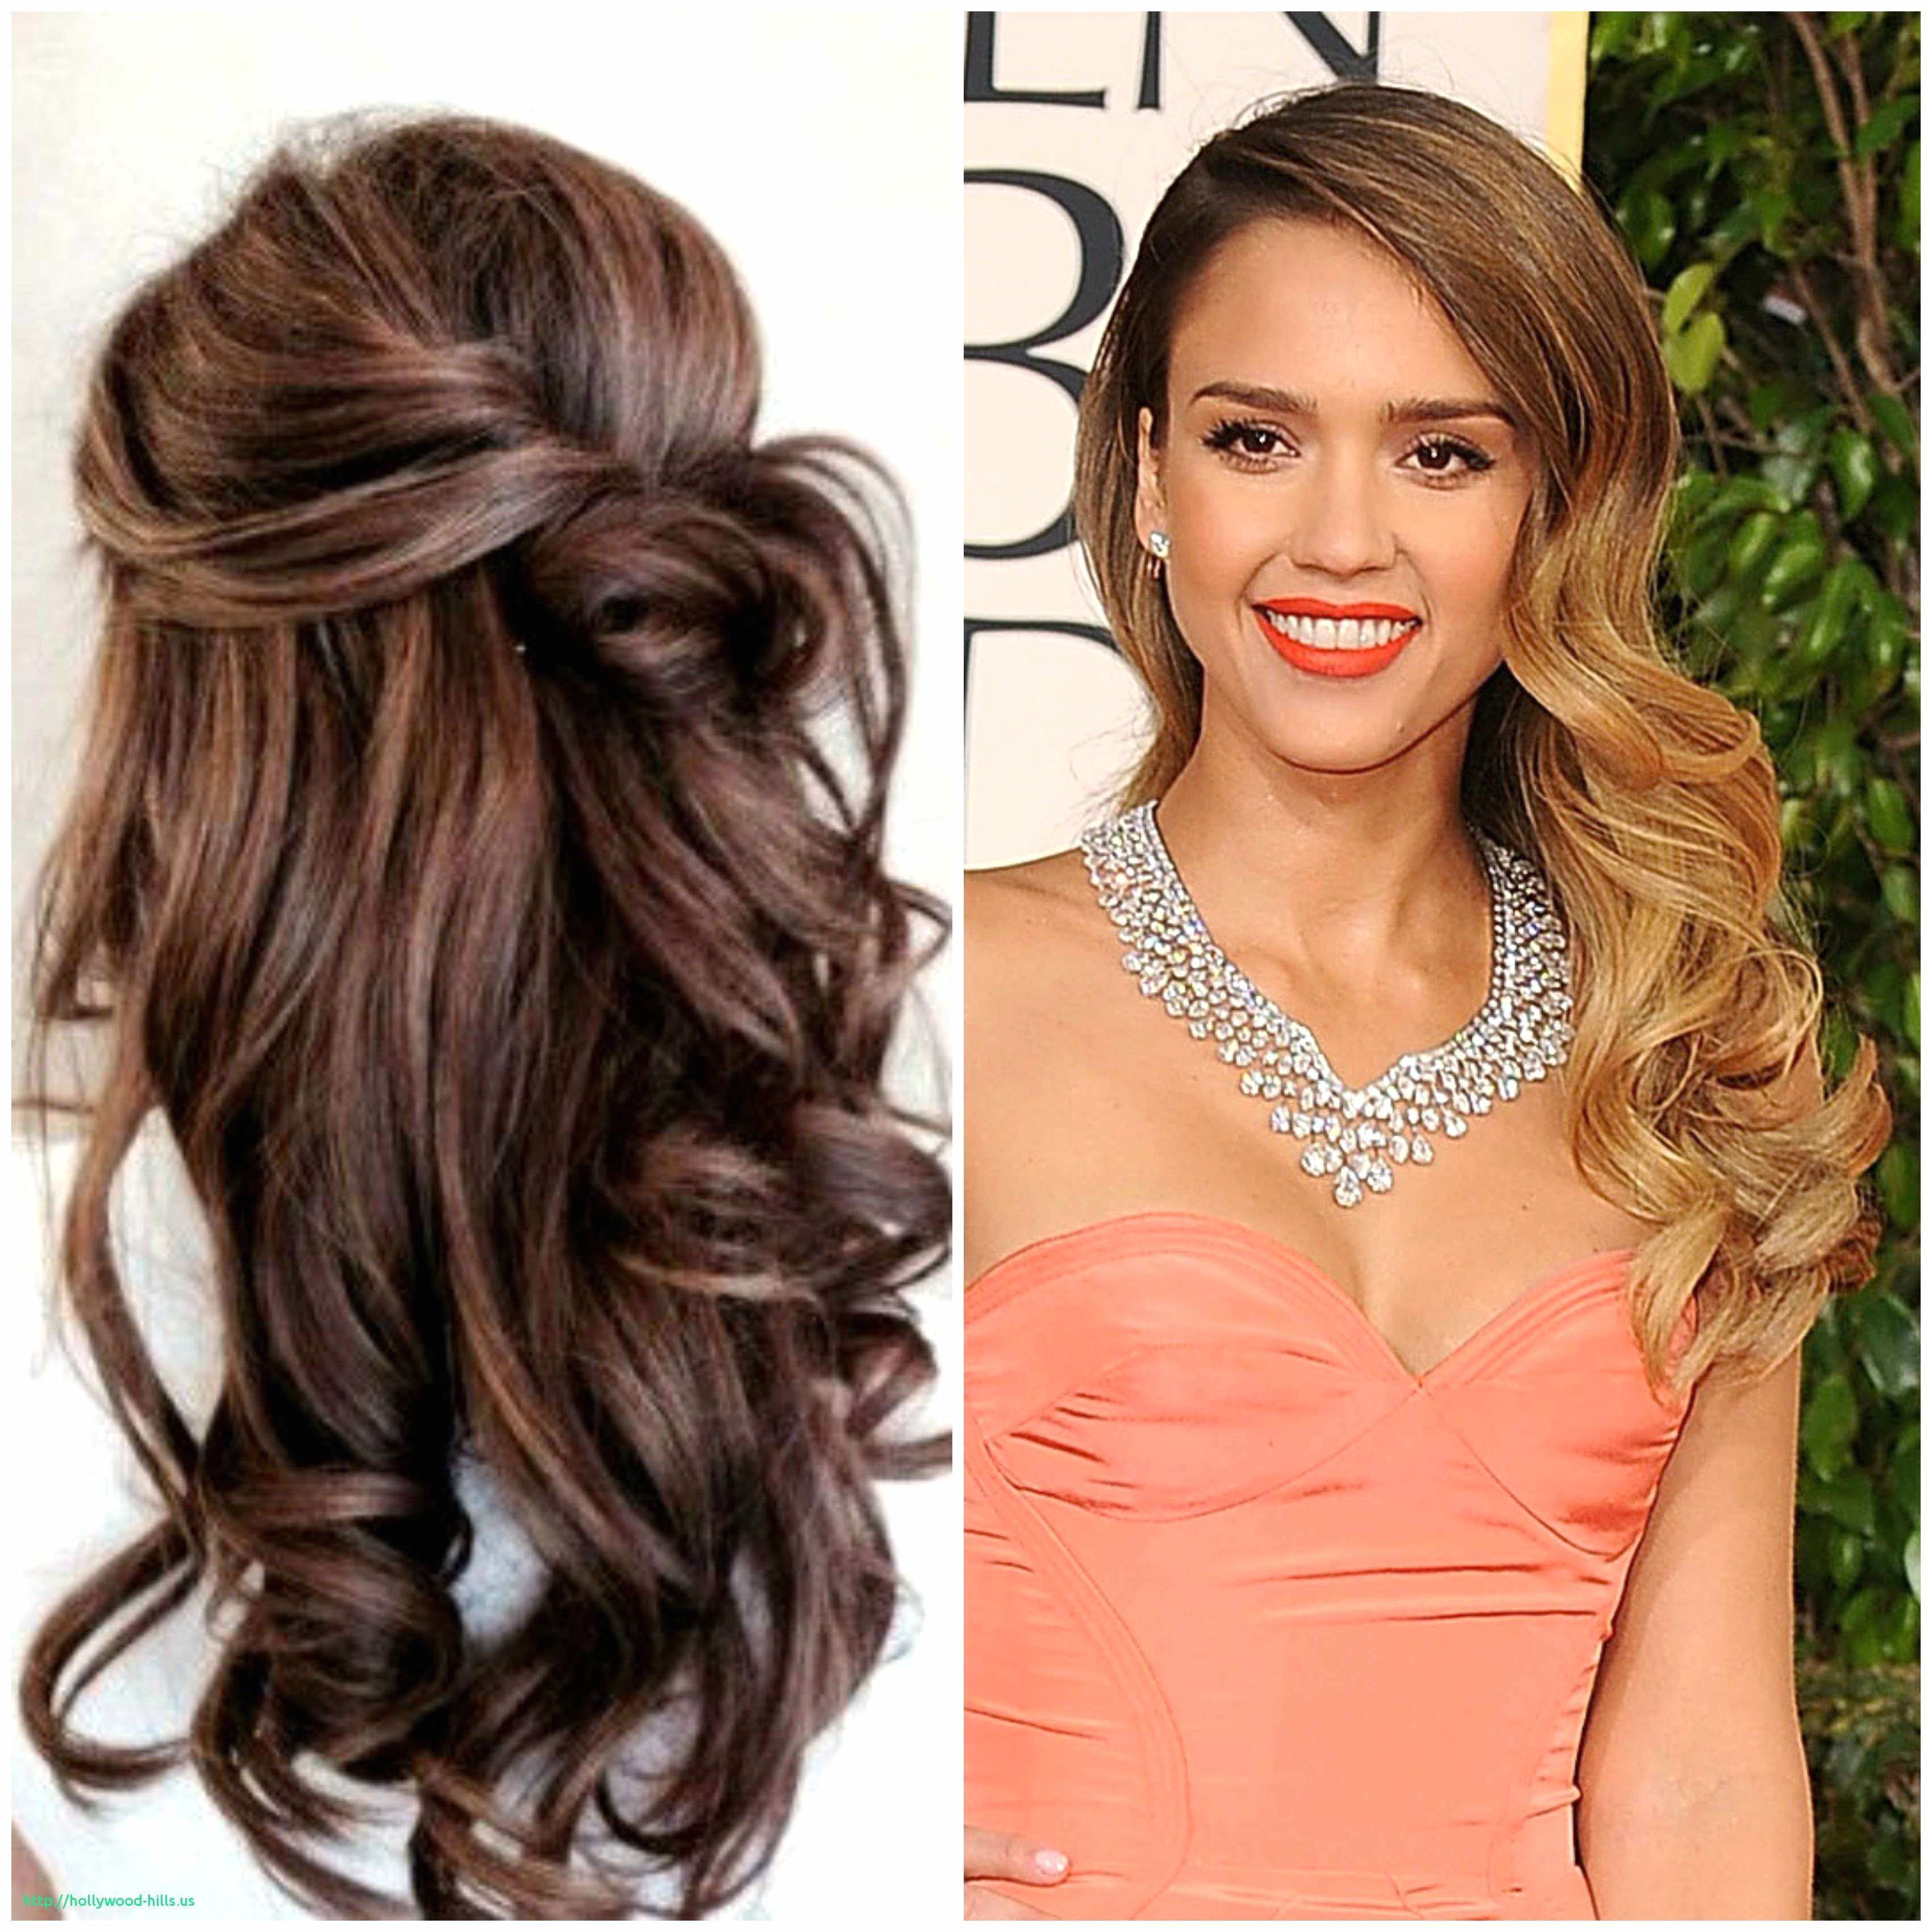 Hairstyle for Girls with Curly Hair Beautiful Curly Hairstyle Unique Very Curly Hairstyles Fresh Curly Hair